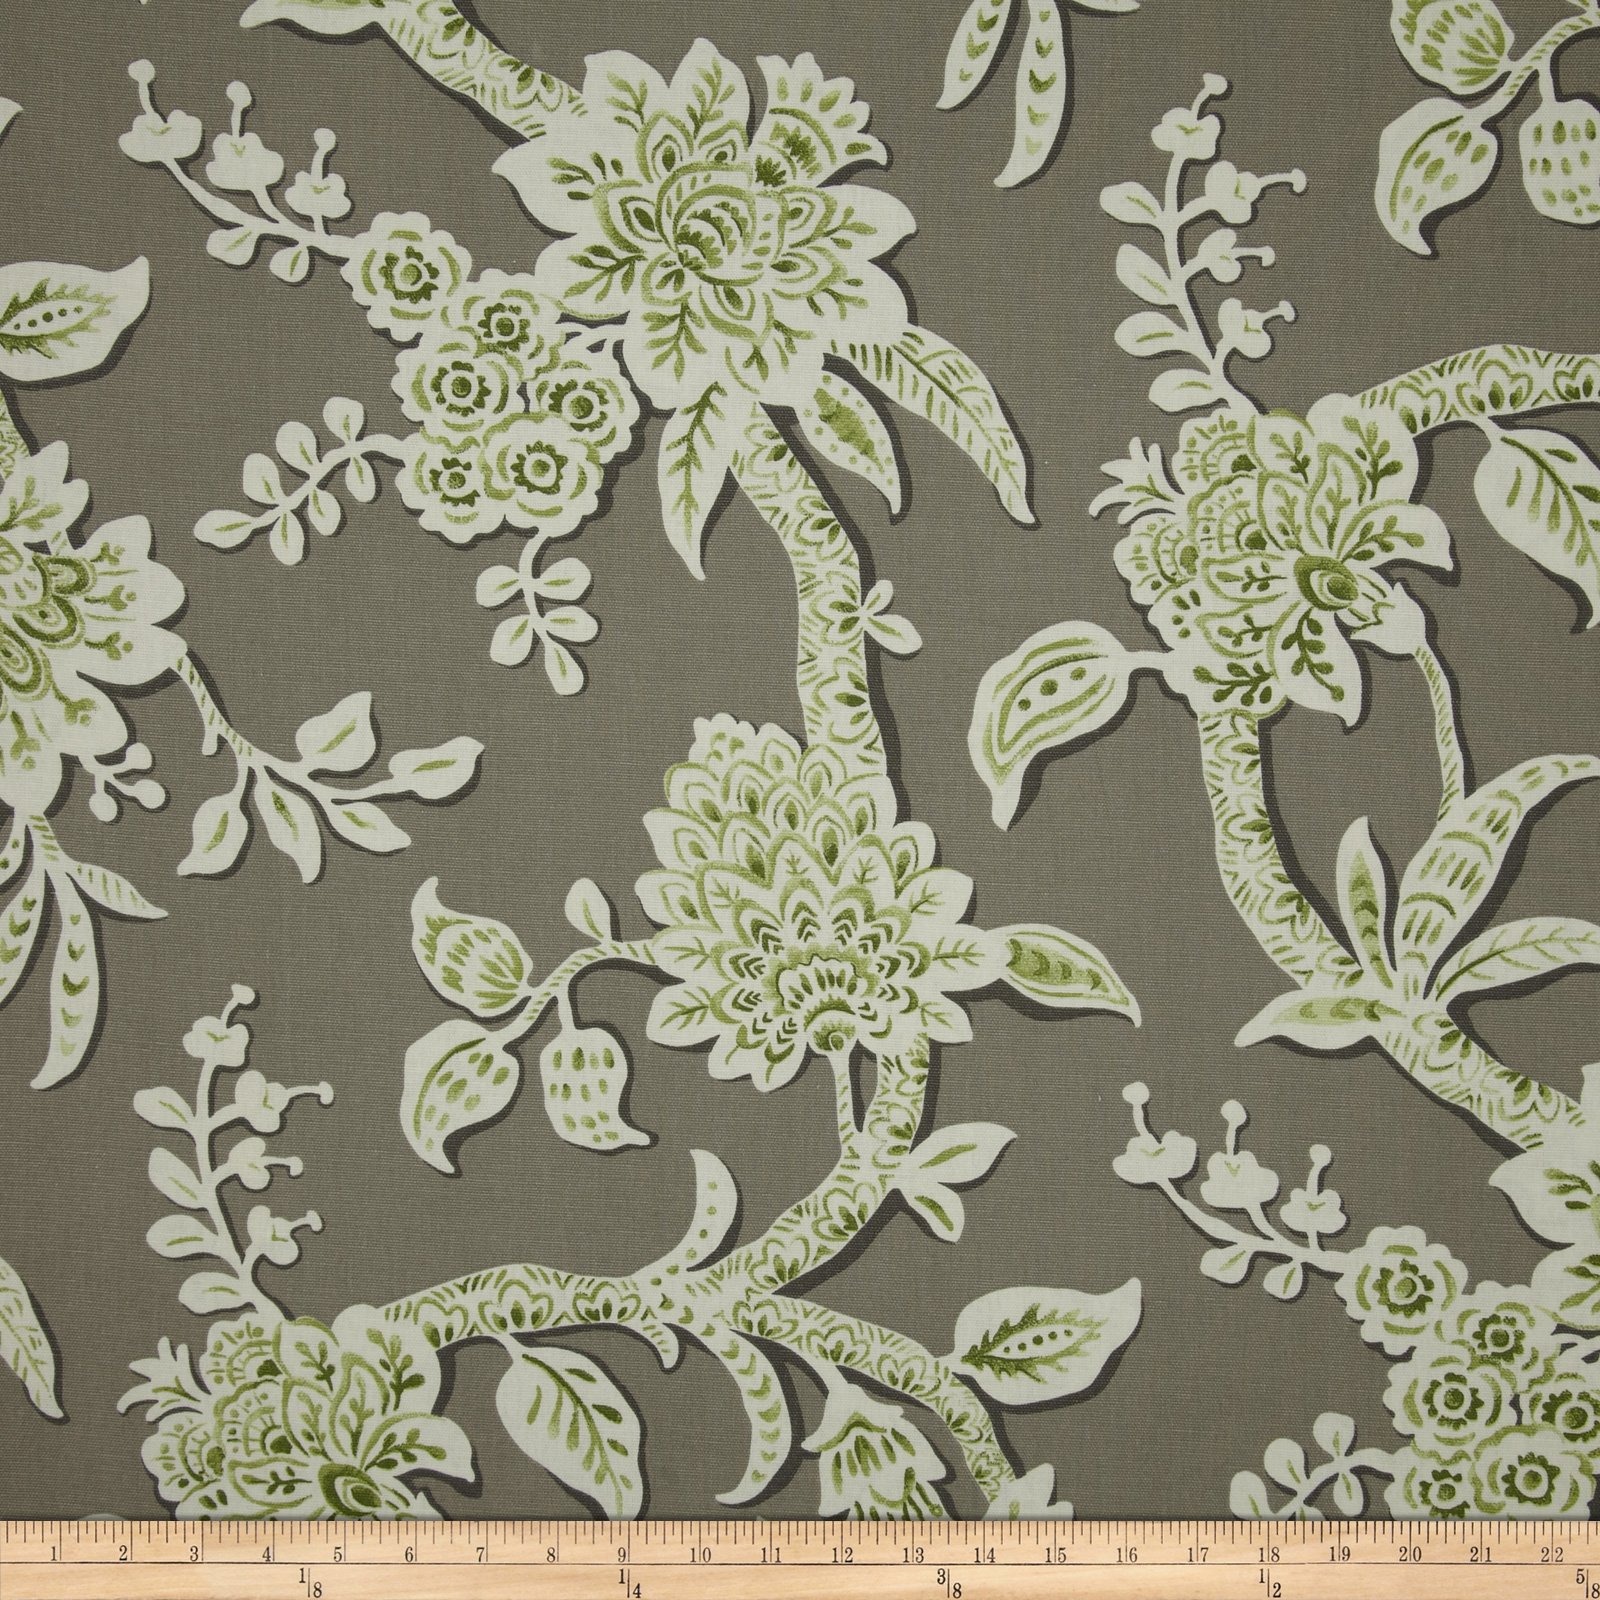 Magnolia Home Fashions Brookhaven Floral Granite Fabric